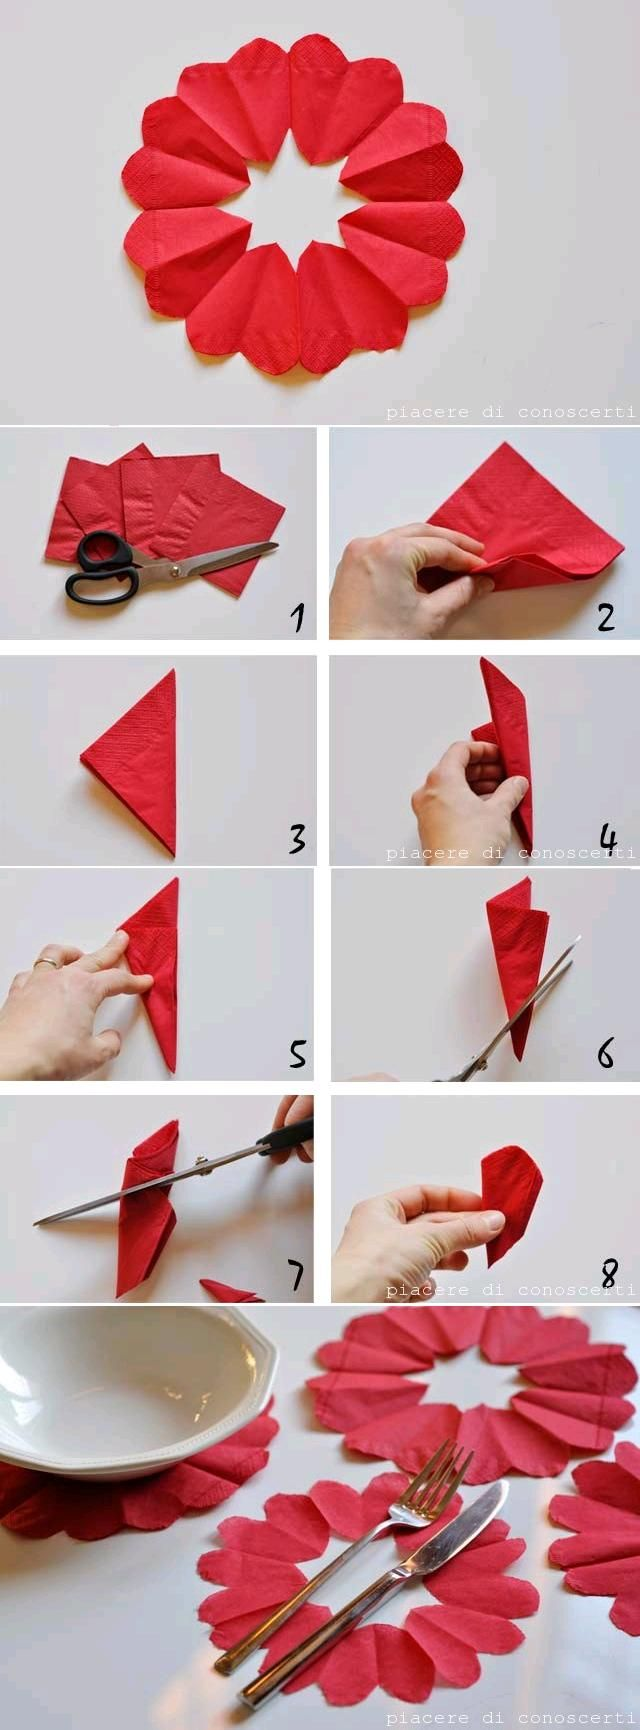 DIY Heart Flower Napkin Decorations | iCreativeIdeas.com Like Us on Facebook ==> https://www.facebook.com/icreativeideas